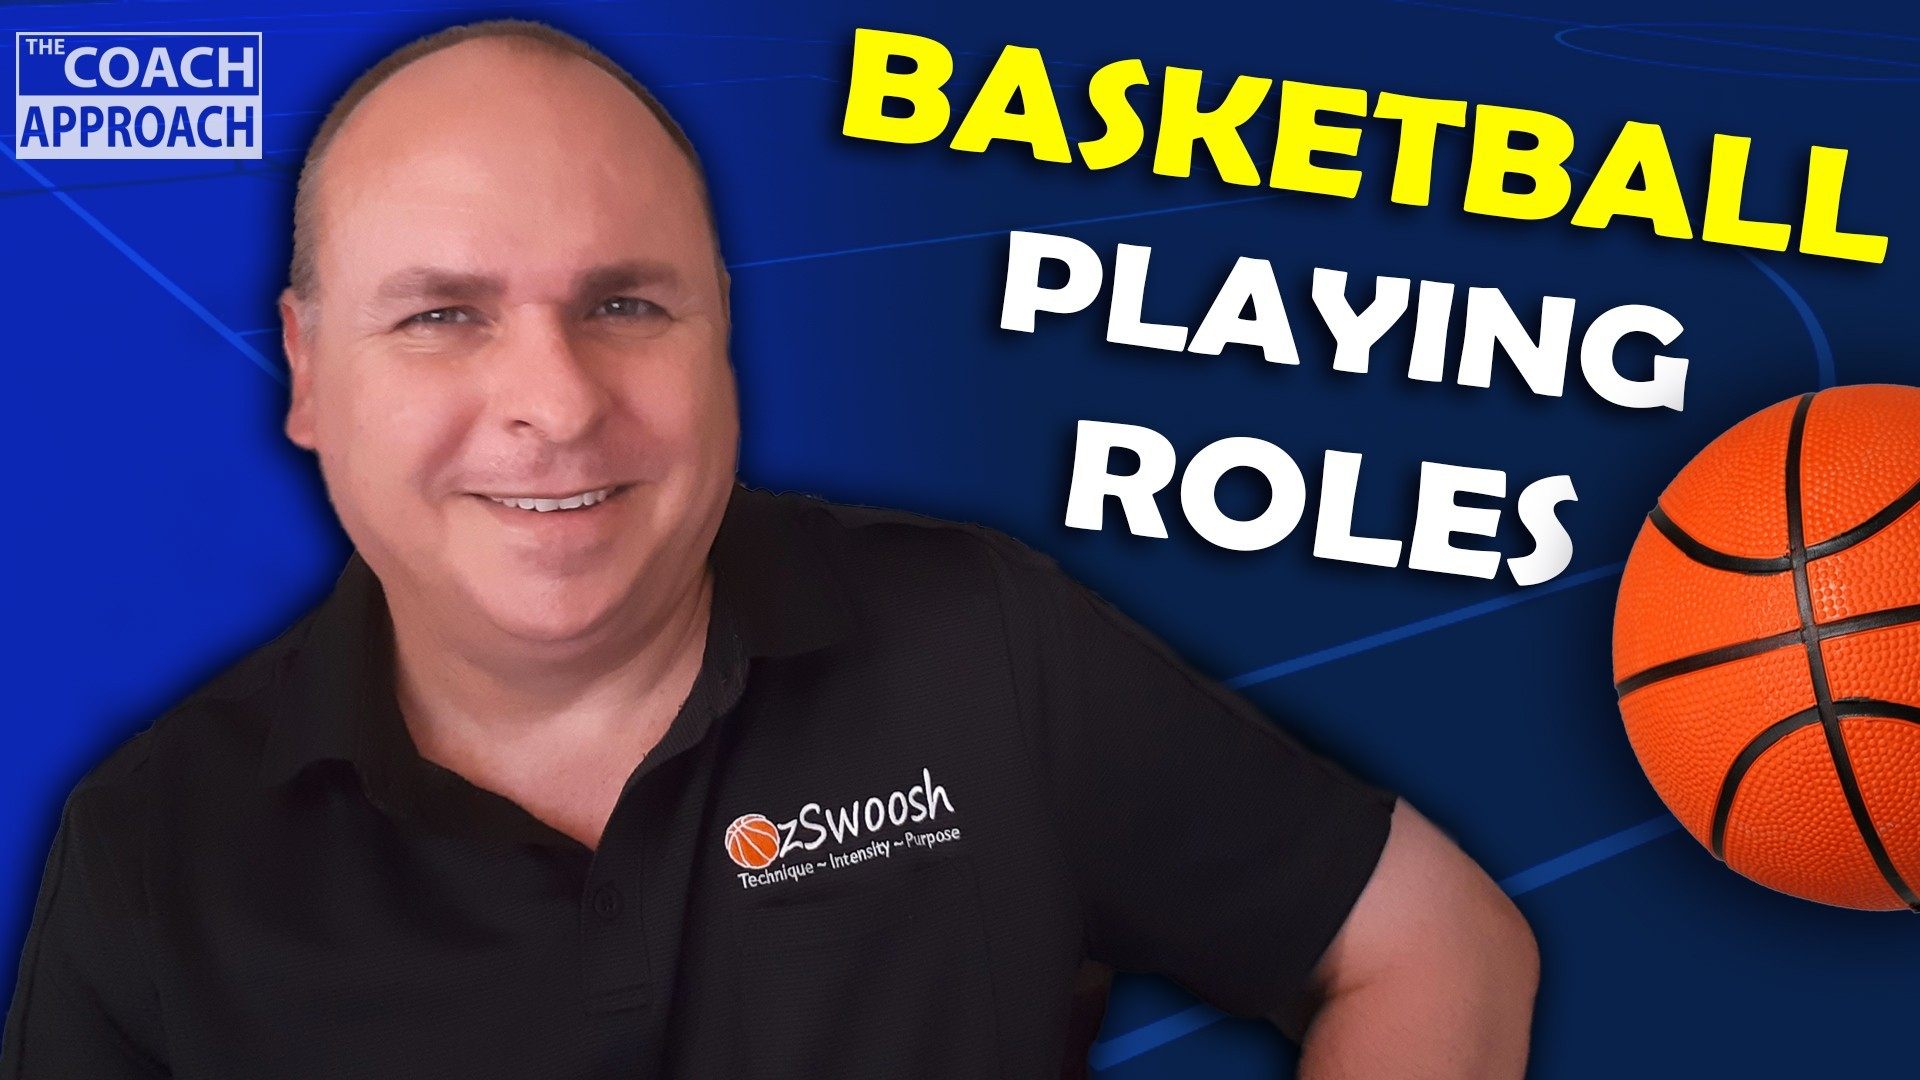 Basketball Playing Positions and Roles (The Coach Approach)